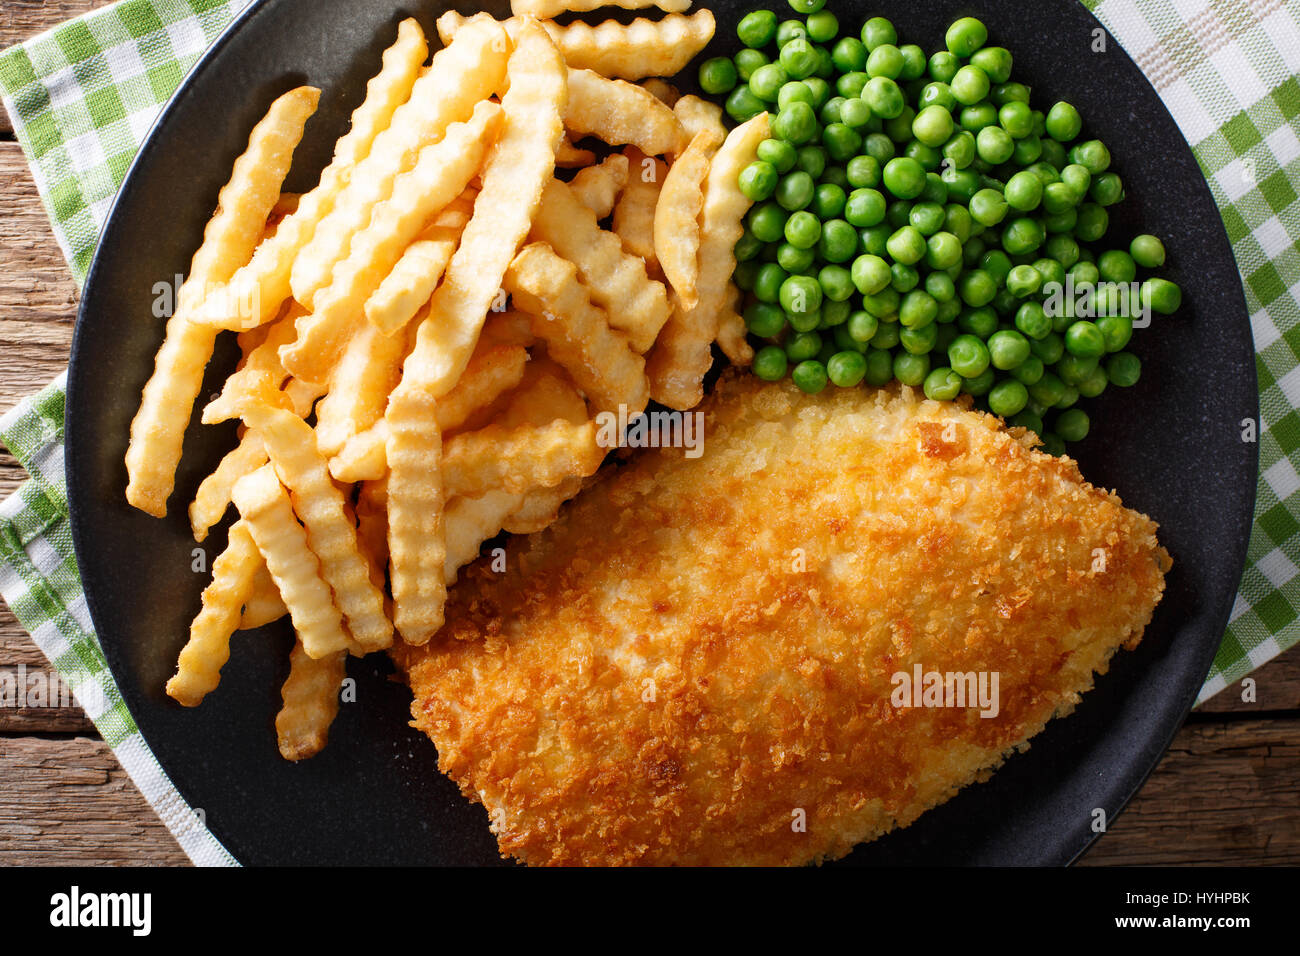 Delicious cod fish and chips with peas close-up on a plate on the table. Horizontal view from above - Stock Image